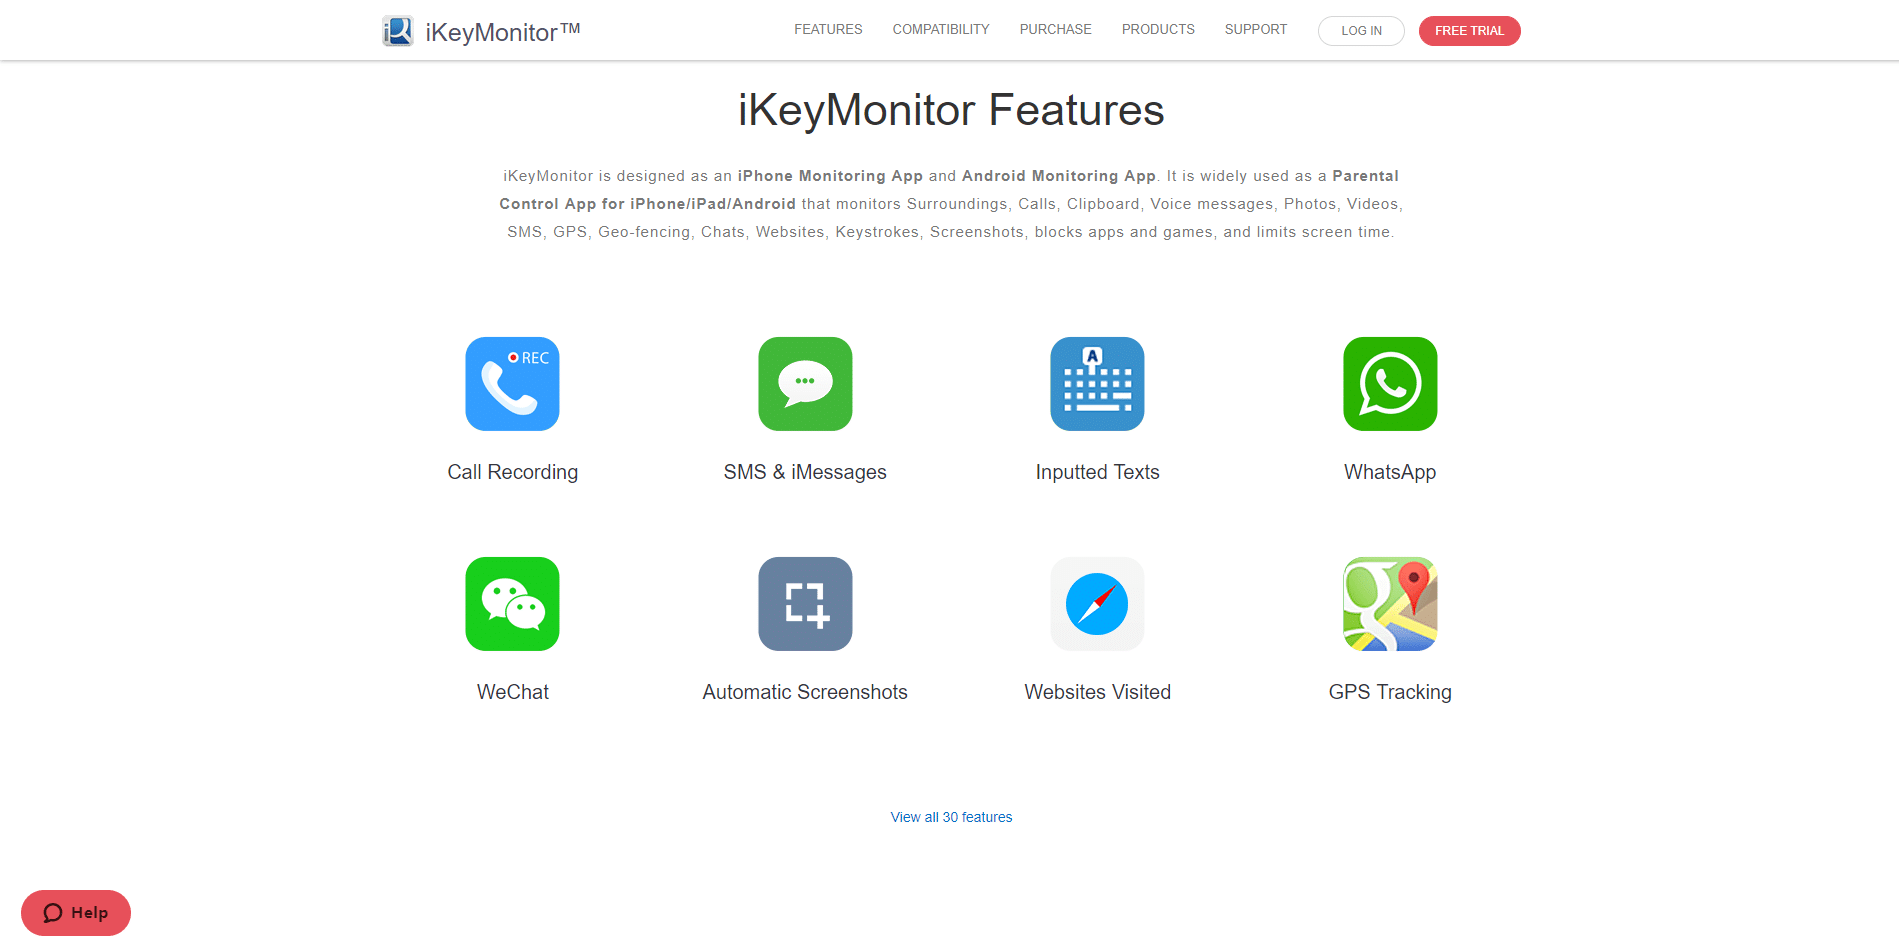 iKeyMonitor features